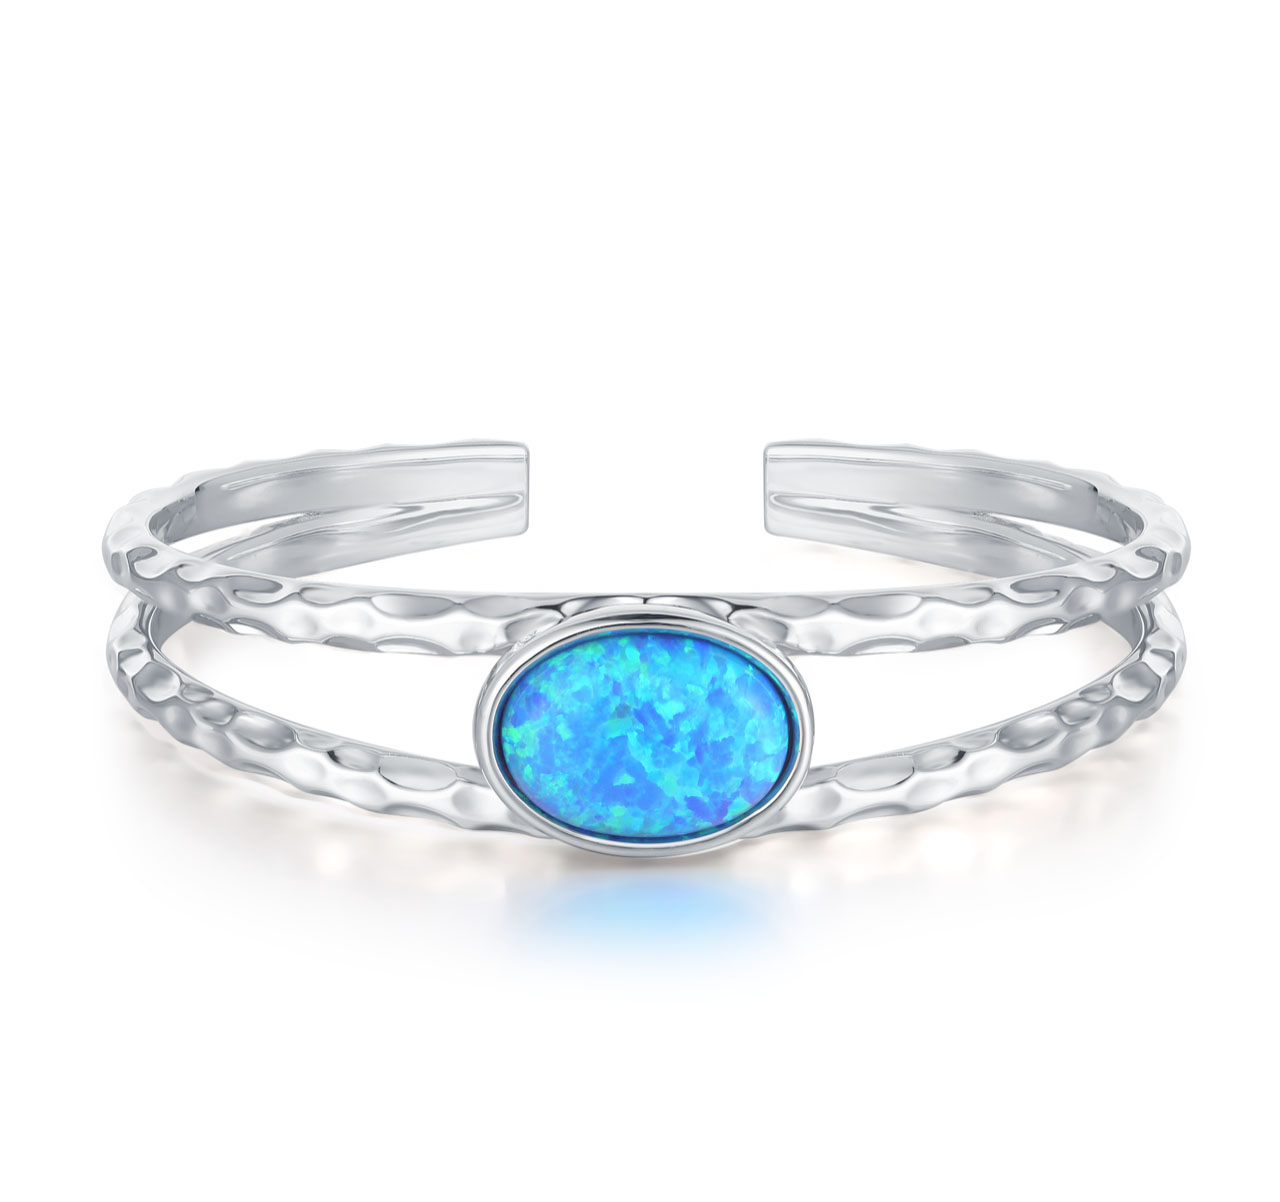 Hammered Silver Opal Bangle